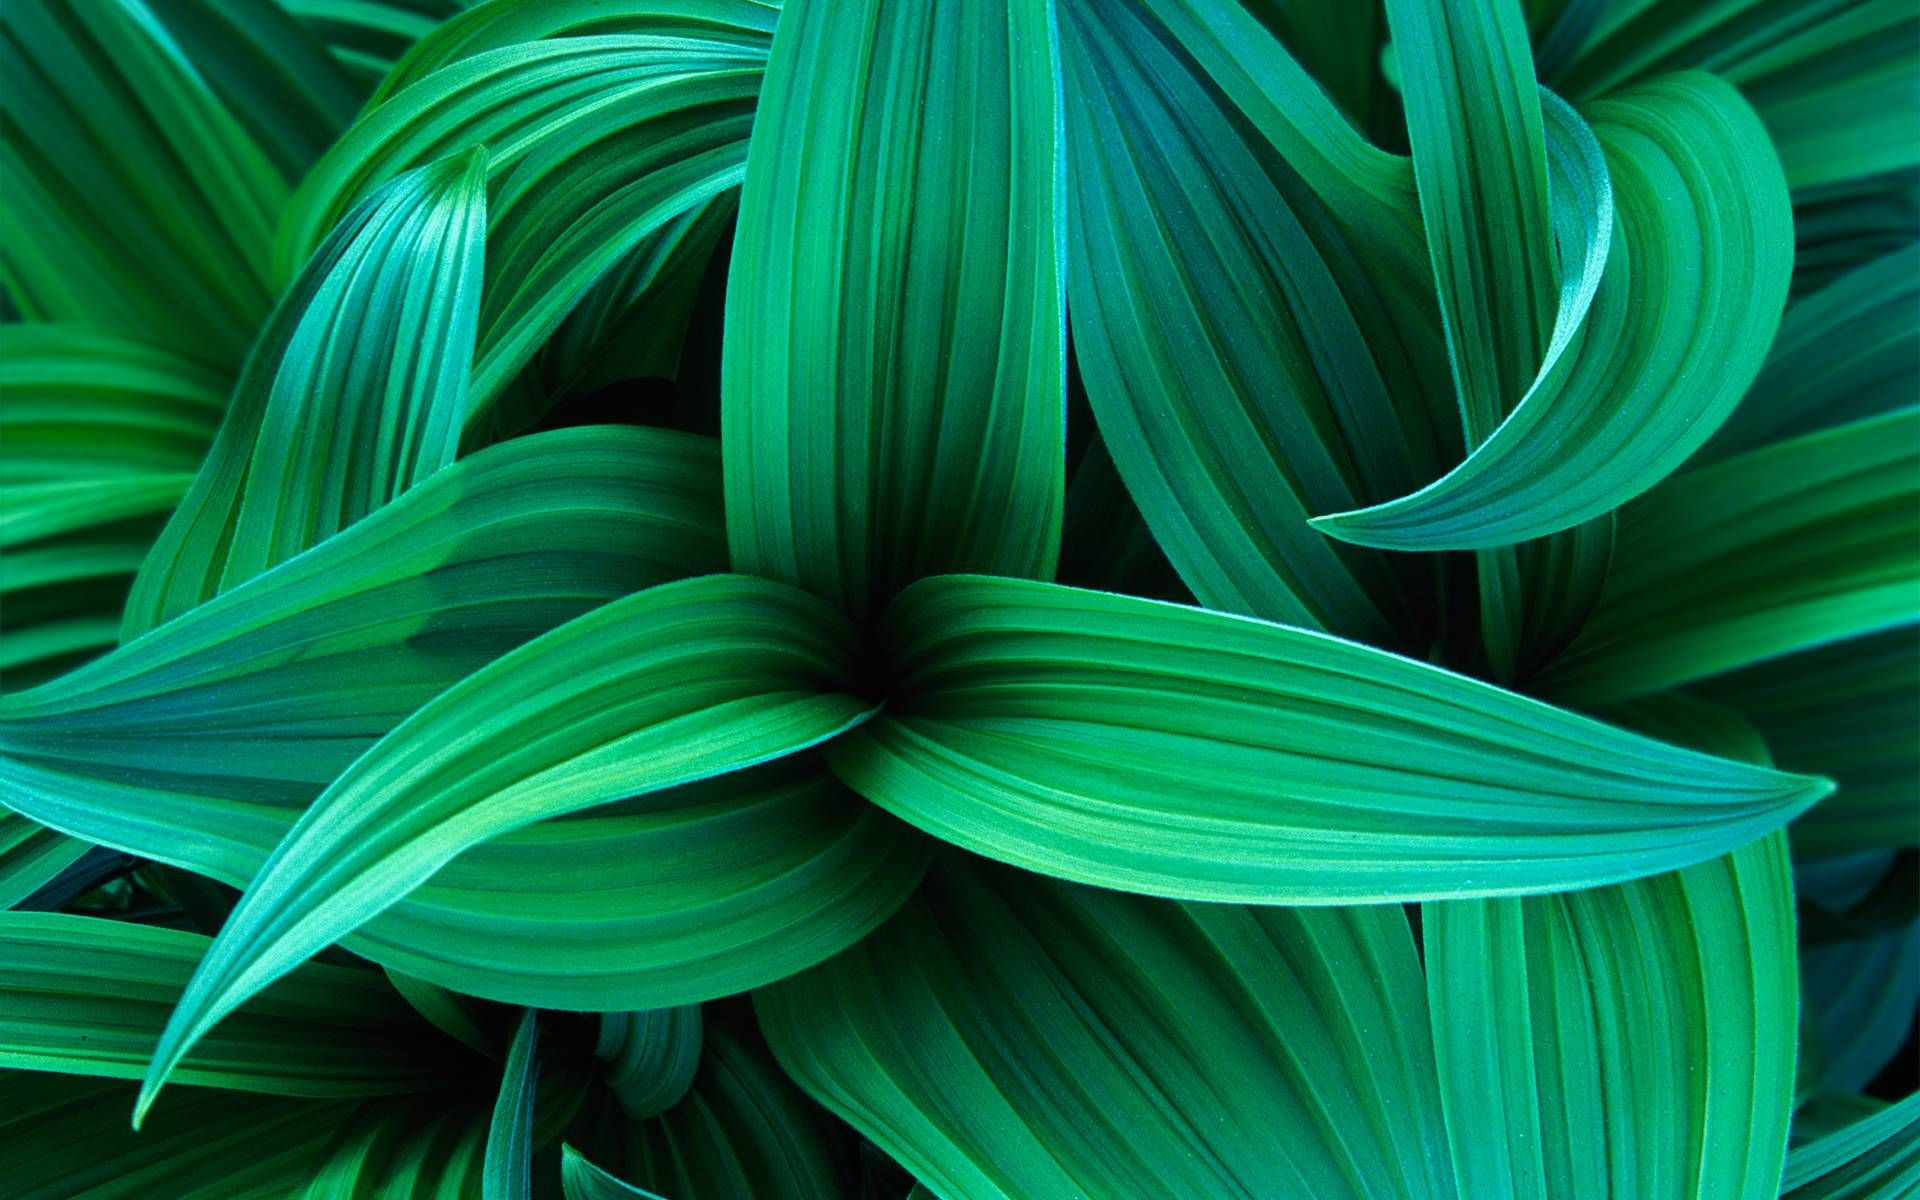 Turquoise Leafs Green Leaf Wallpaper Green Nature Nature Wallpaper